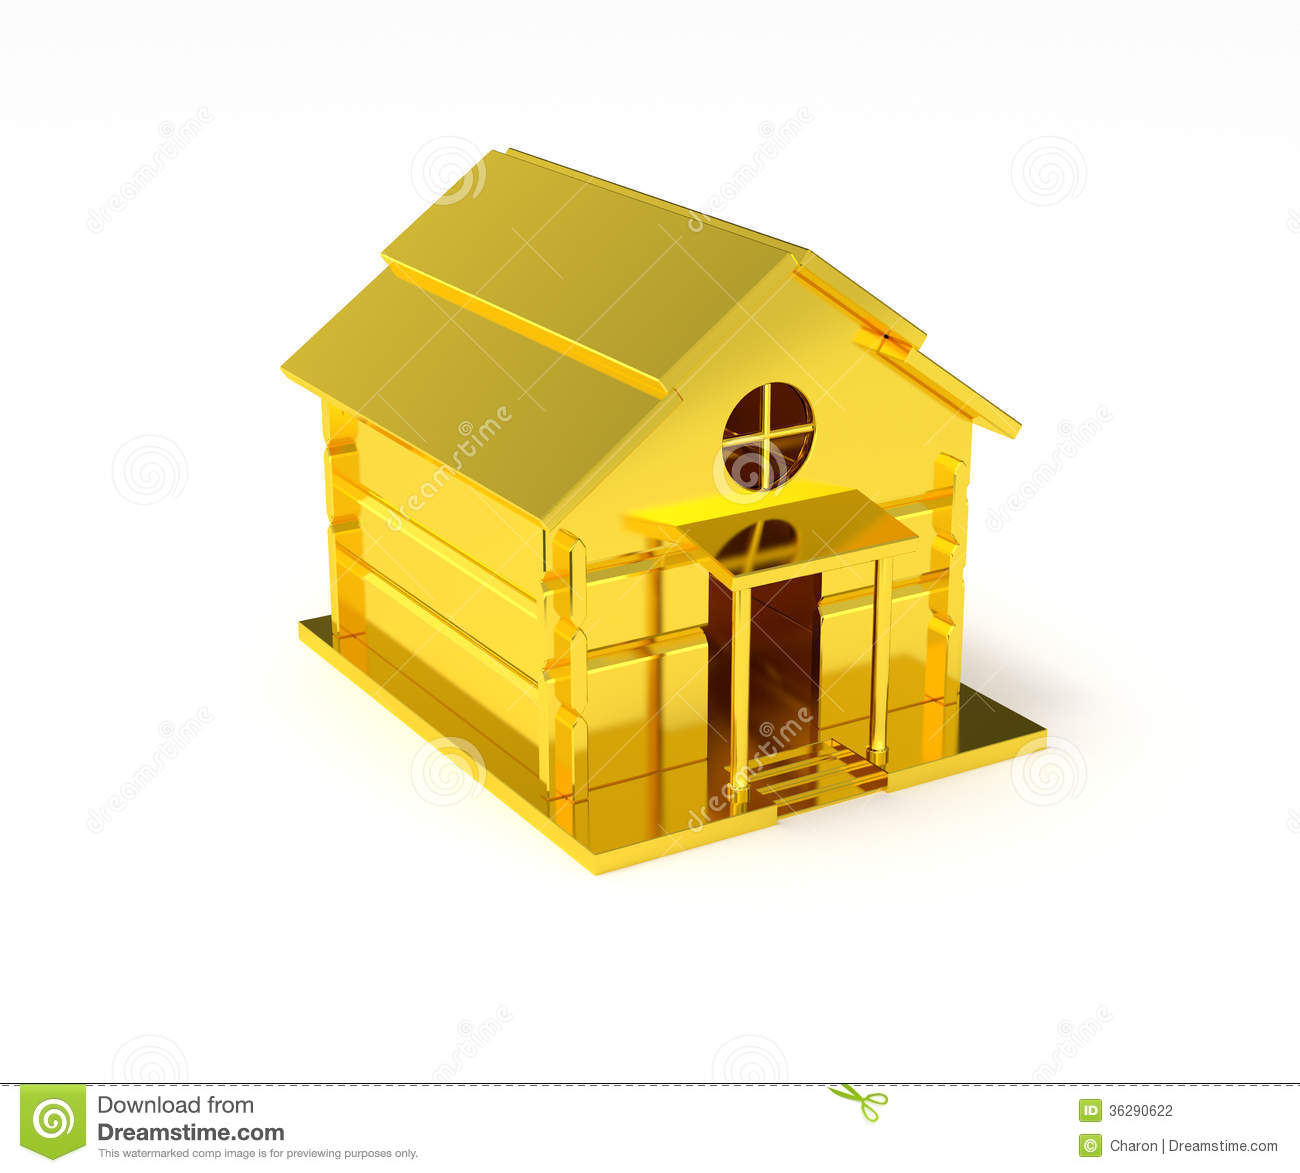 Golden House Miniature Gold Toy Stock Illustration